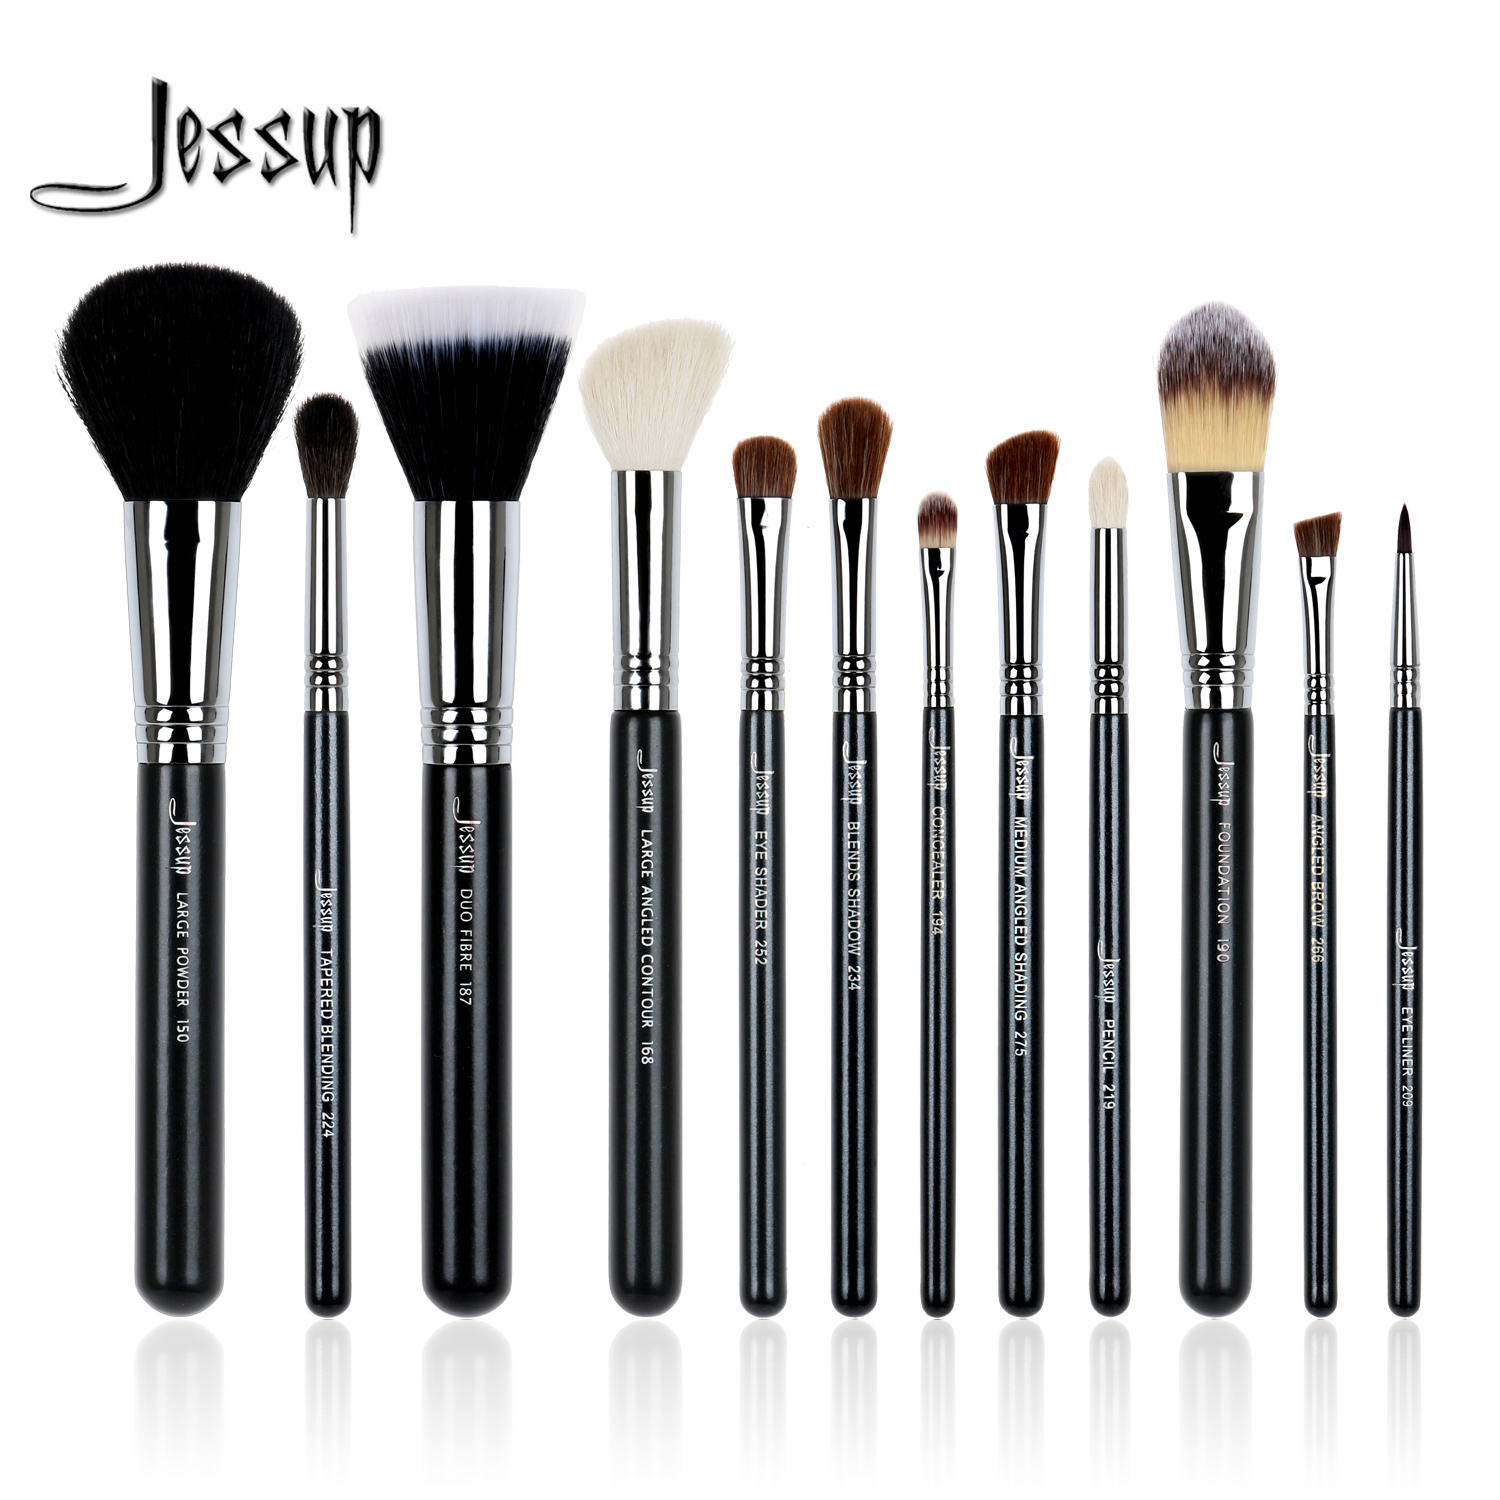 Jessup 12Pcs High Quality Pro Makeup Brushes Set Foundation Contour EyeShader Blend Eyeliner Brow Powder Make up Brush Tool new pro 22pcs cosmetic makeup brushes set bulsh powder foundation eyeshadow eyeliner lip make up brush high quality maquiagem